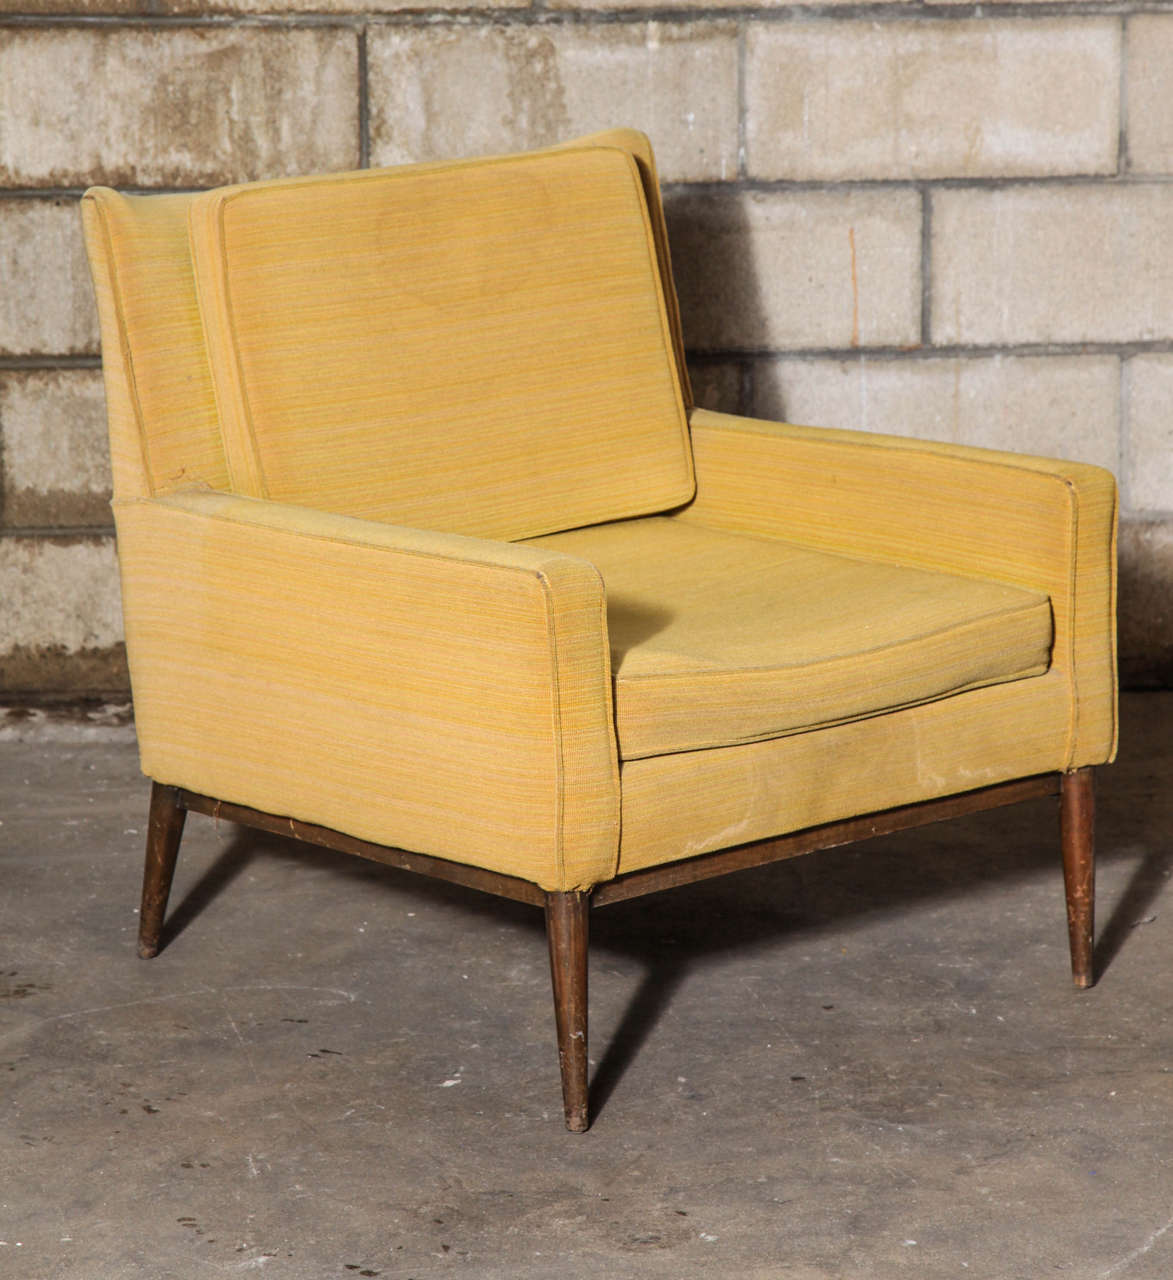 Charmant Paul McCobb Lounge Chairs And Ottoman